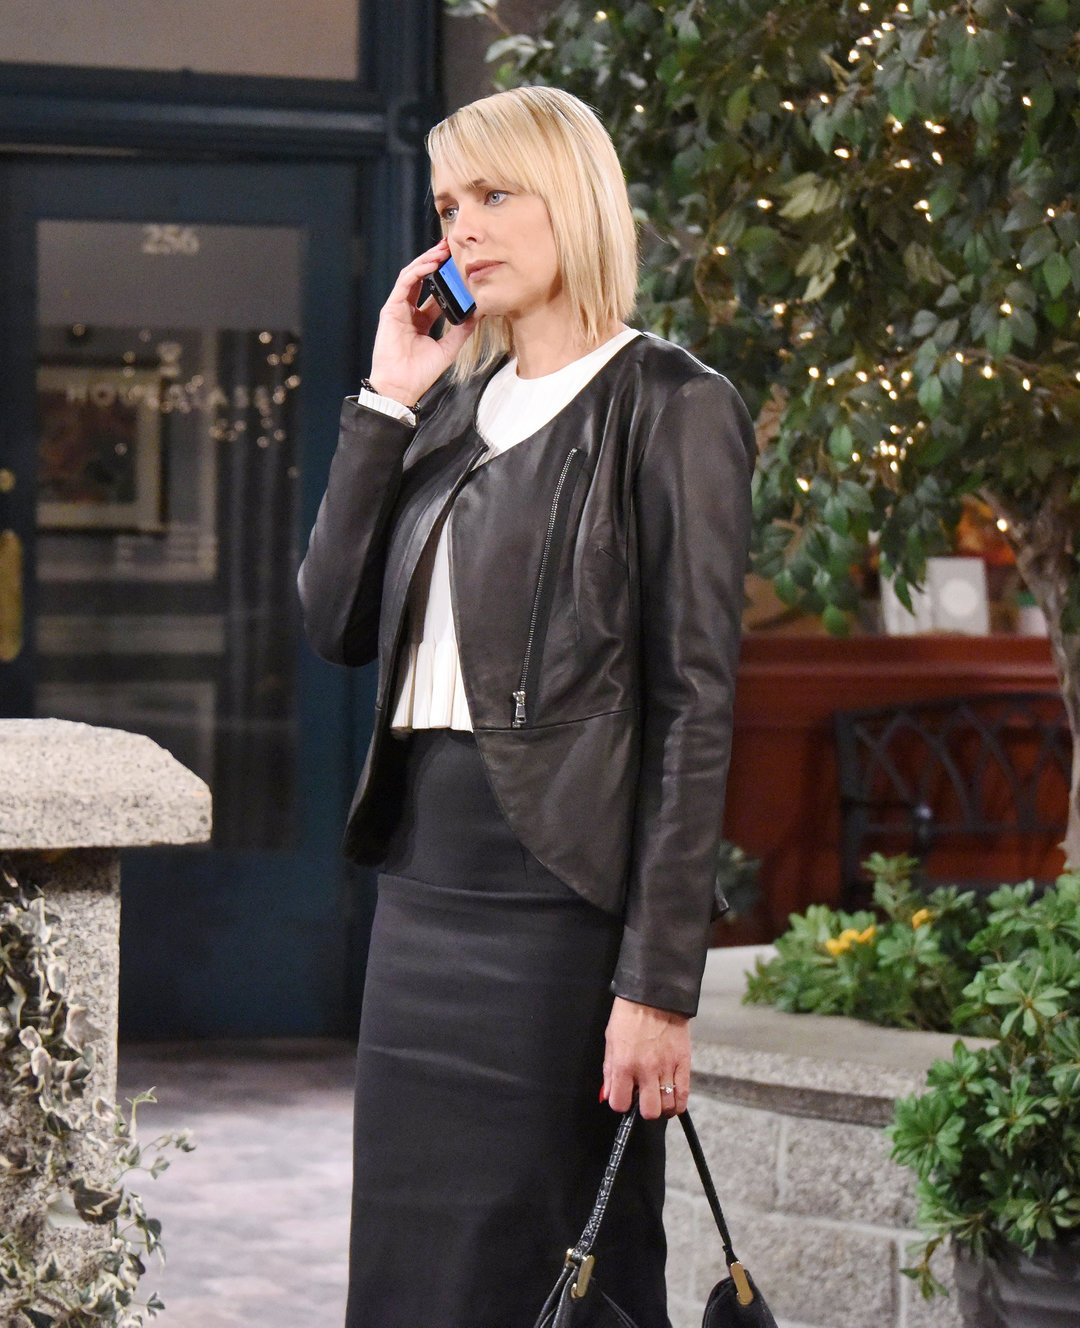 Days of Our Lives Spoilers: Kim and Shane Try to Save Theresa – Deceitful Chloe Faces Nicole and Daniel Baby Dilemma